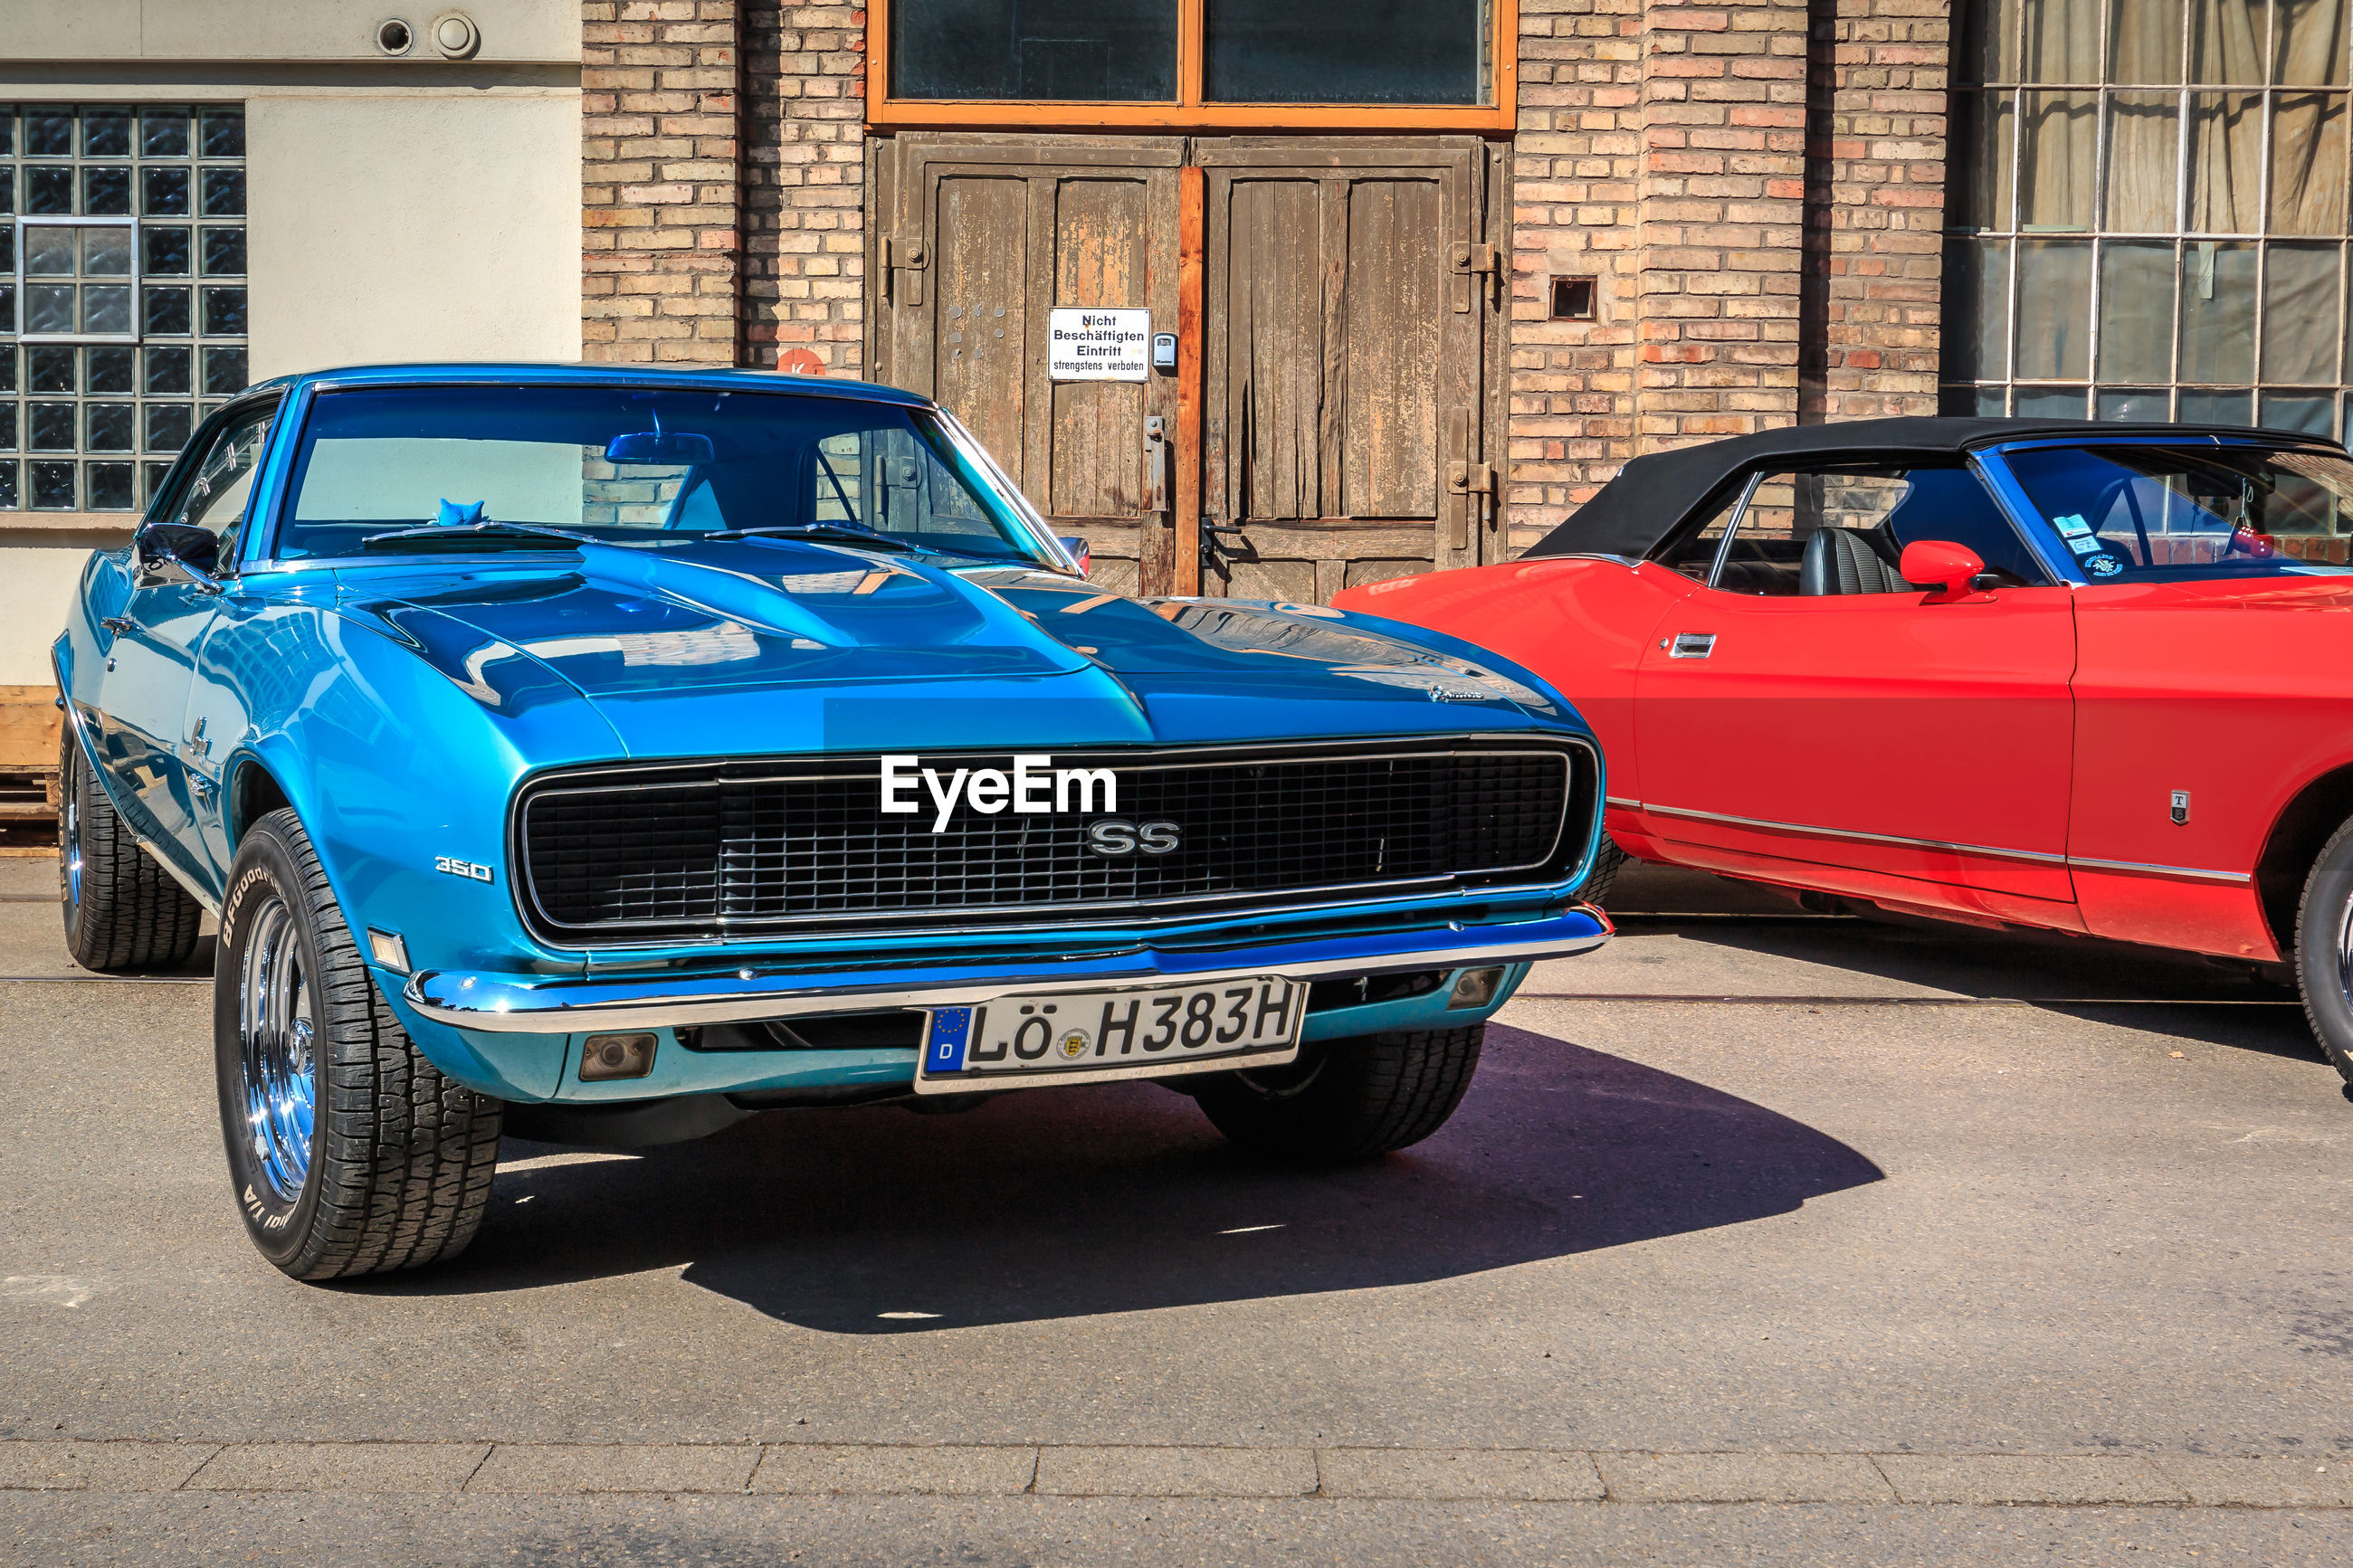 car, mode of transportation, land vehicle, motor vehicle, transportation, architecture, blue, built structure, building exterior, city, day, street, retro styled, vintage car, stationary, building, outdoors, no people, sunlight, luxury, garage